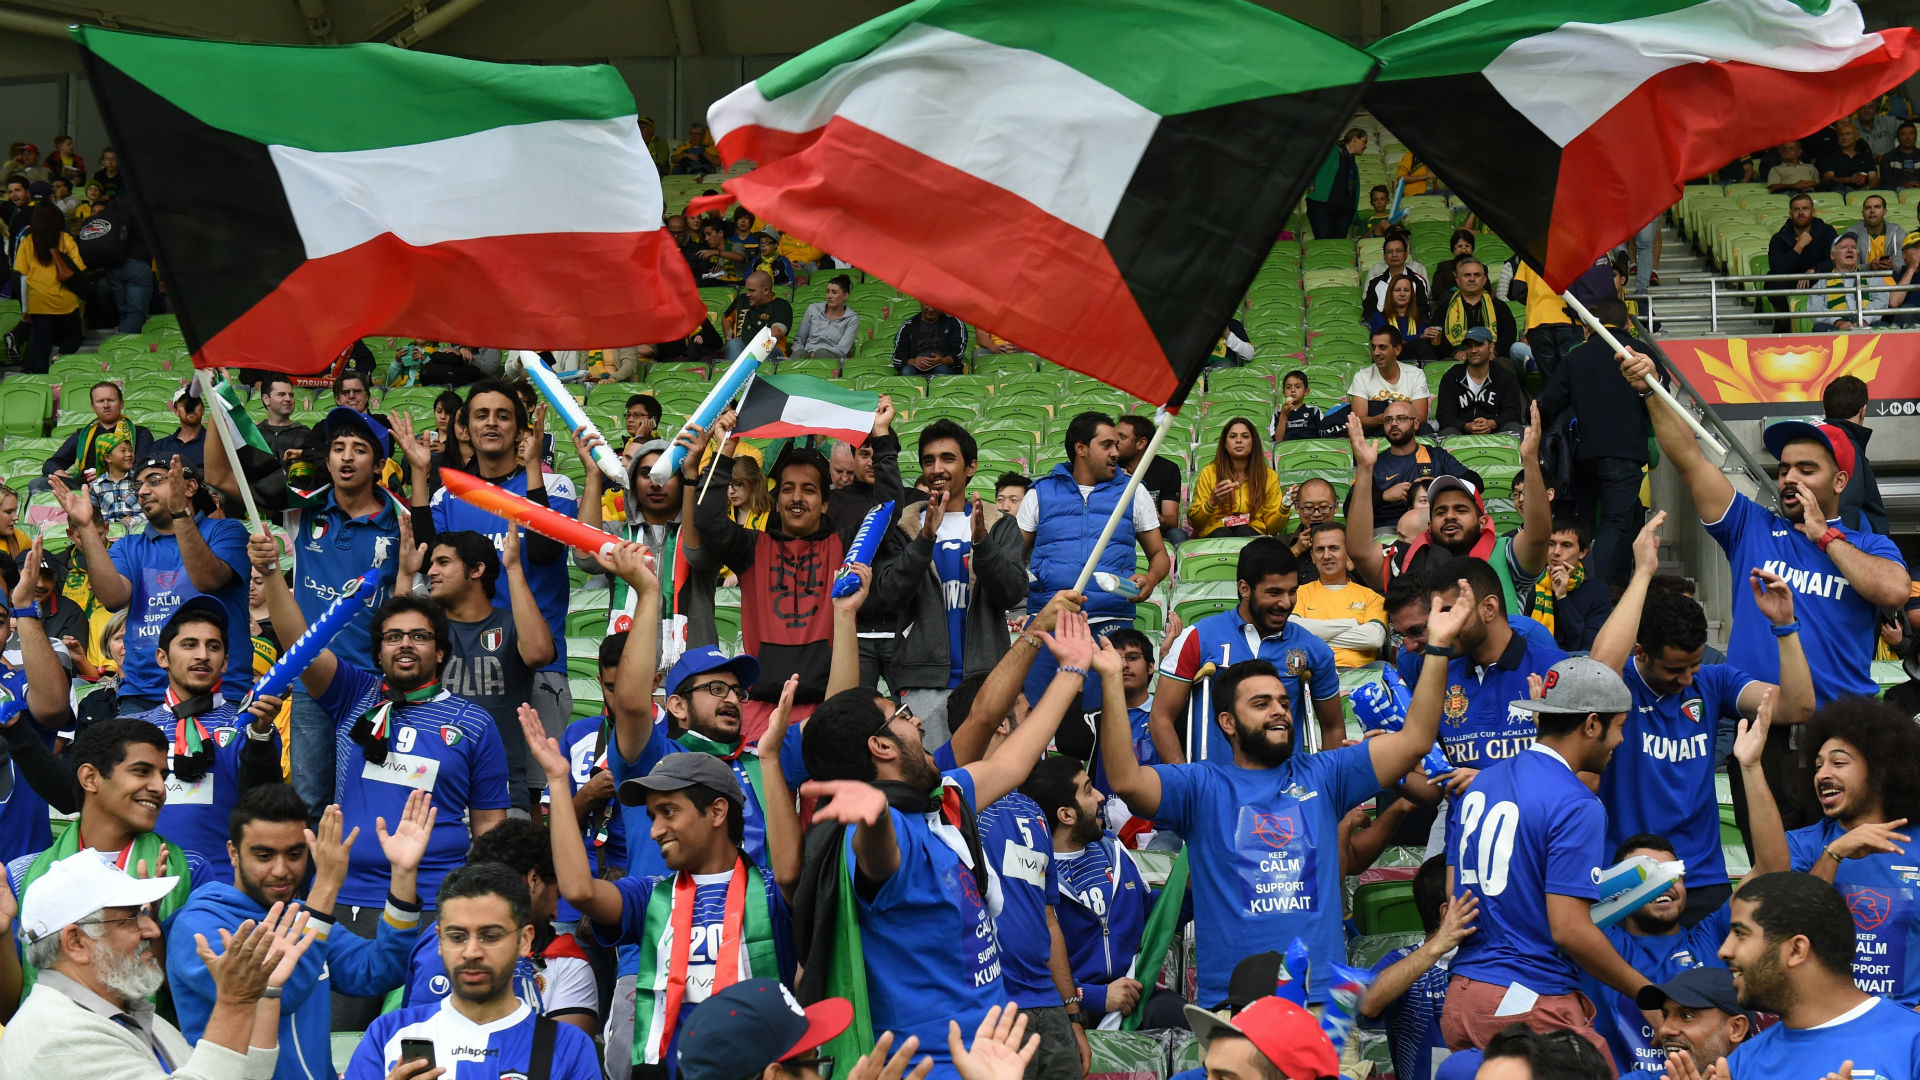 Federation Internationale de Football Association lifts Kuwait's 2-year ban from worldwide soccer